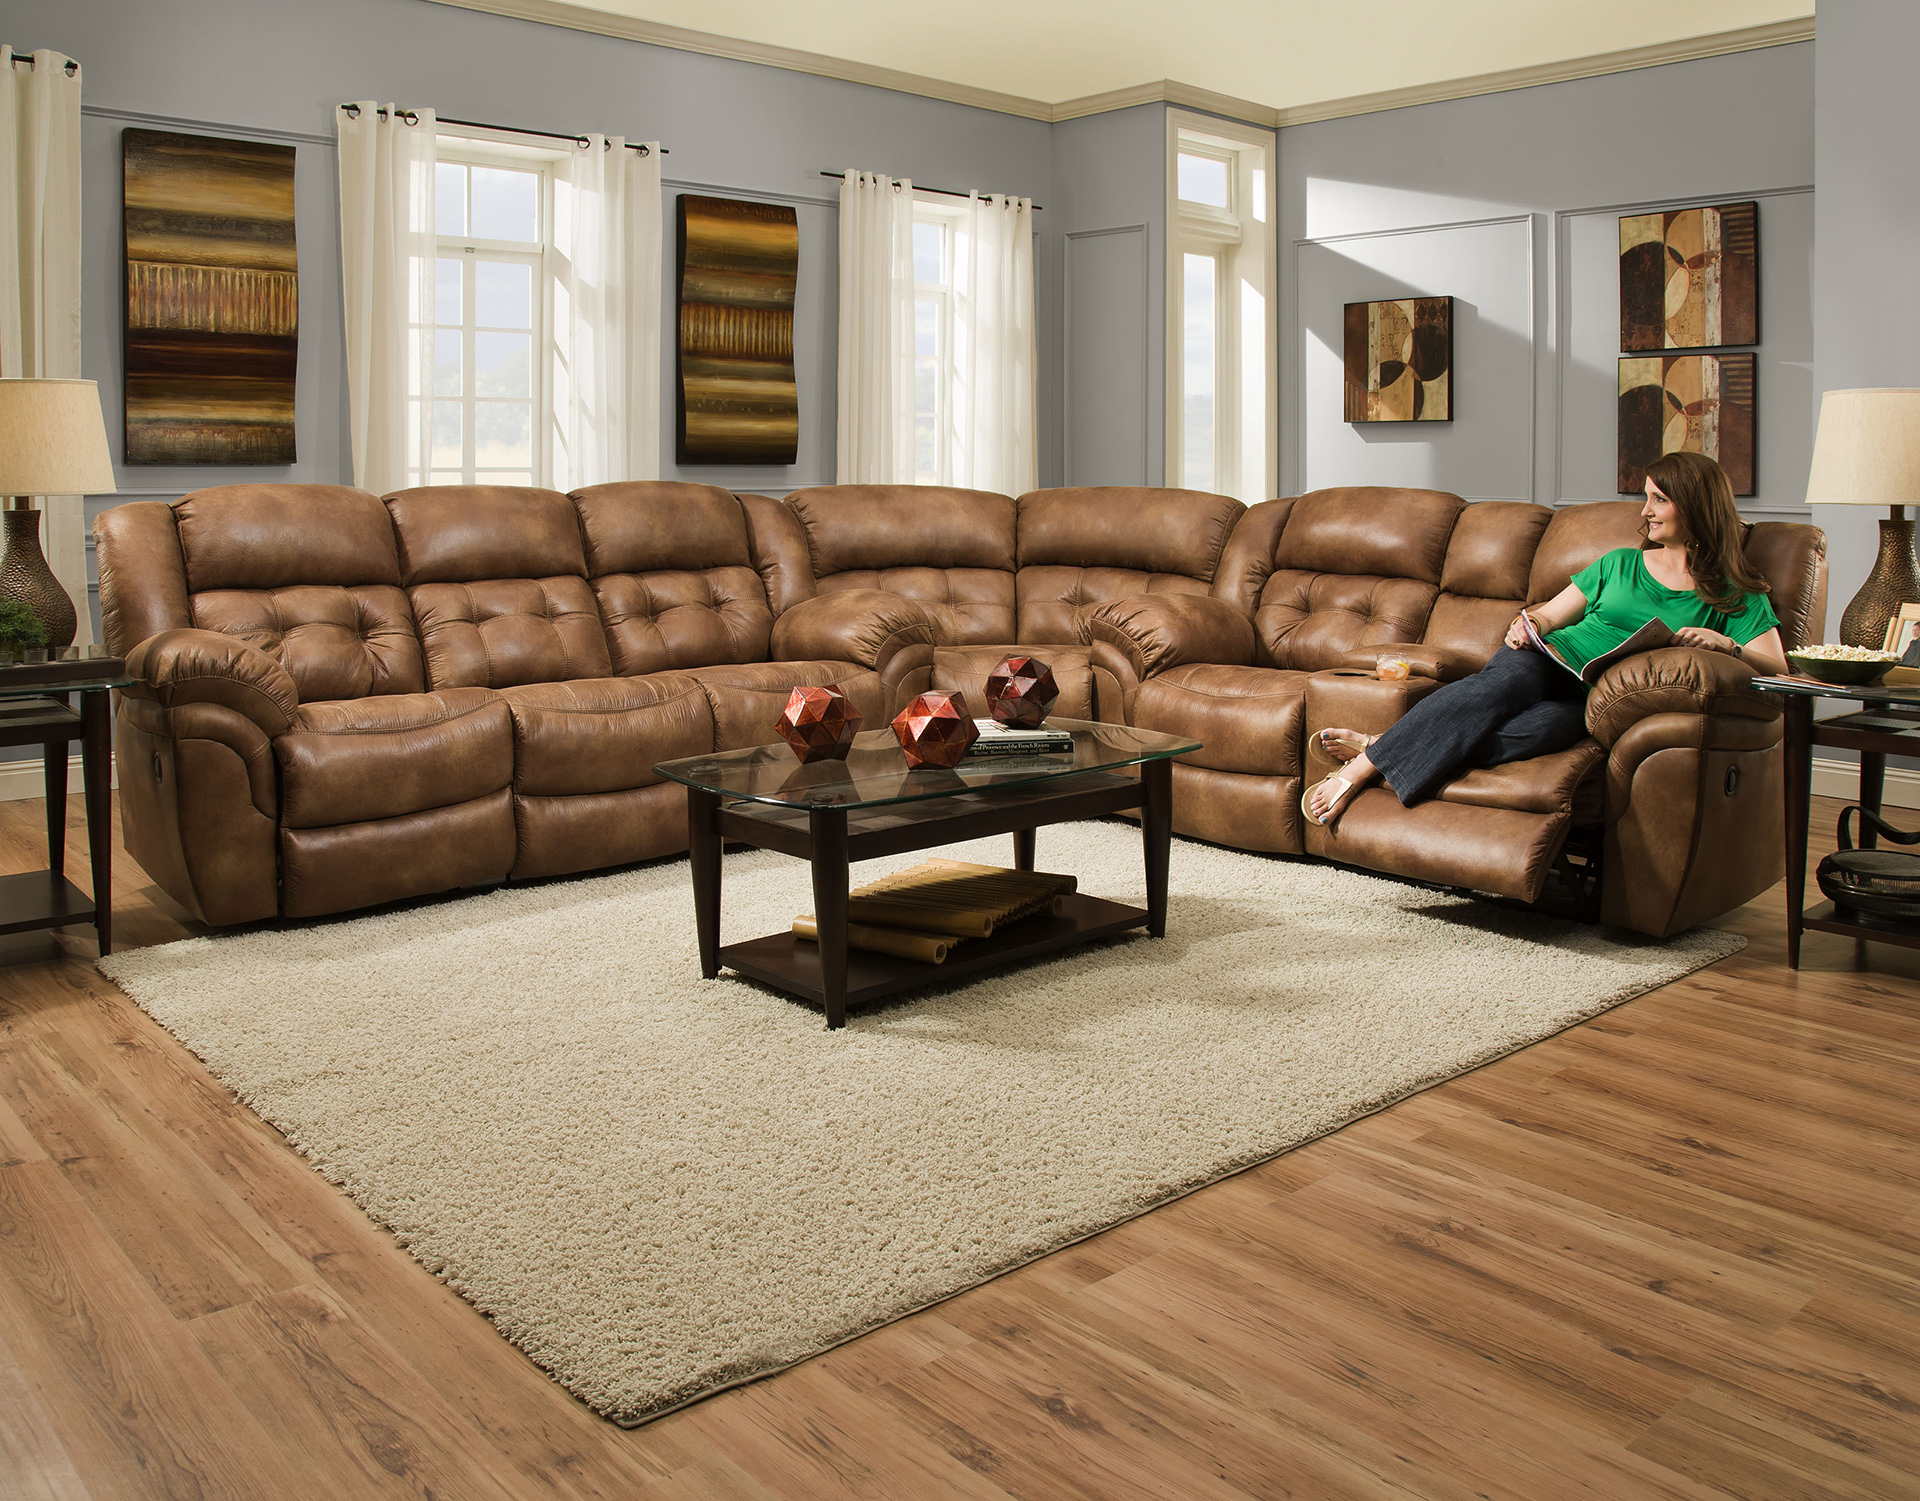 Super-Wedge 129 Sectional Sofa – Your Furniture 4 Less